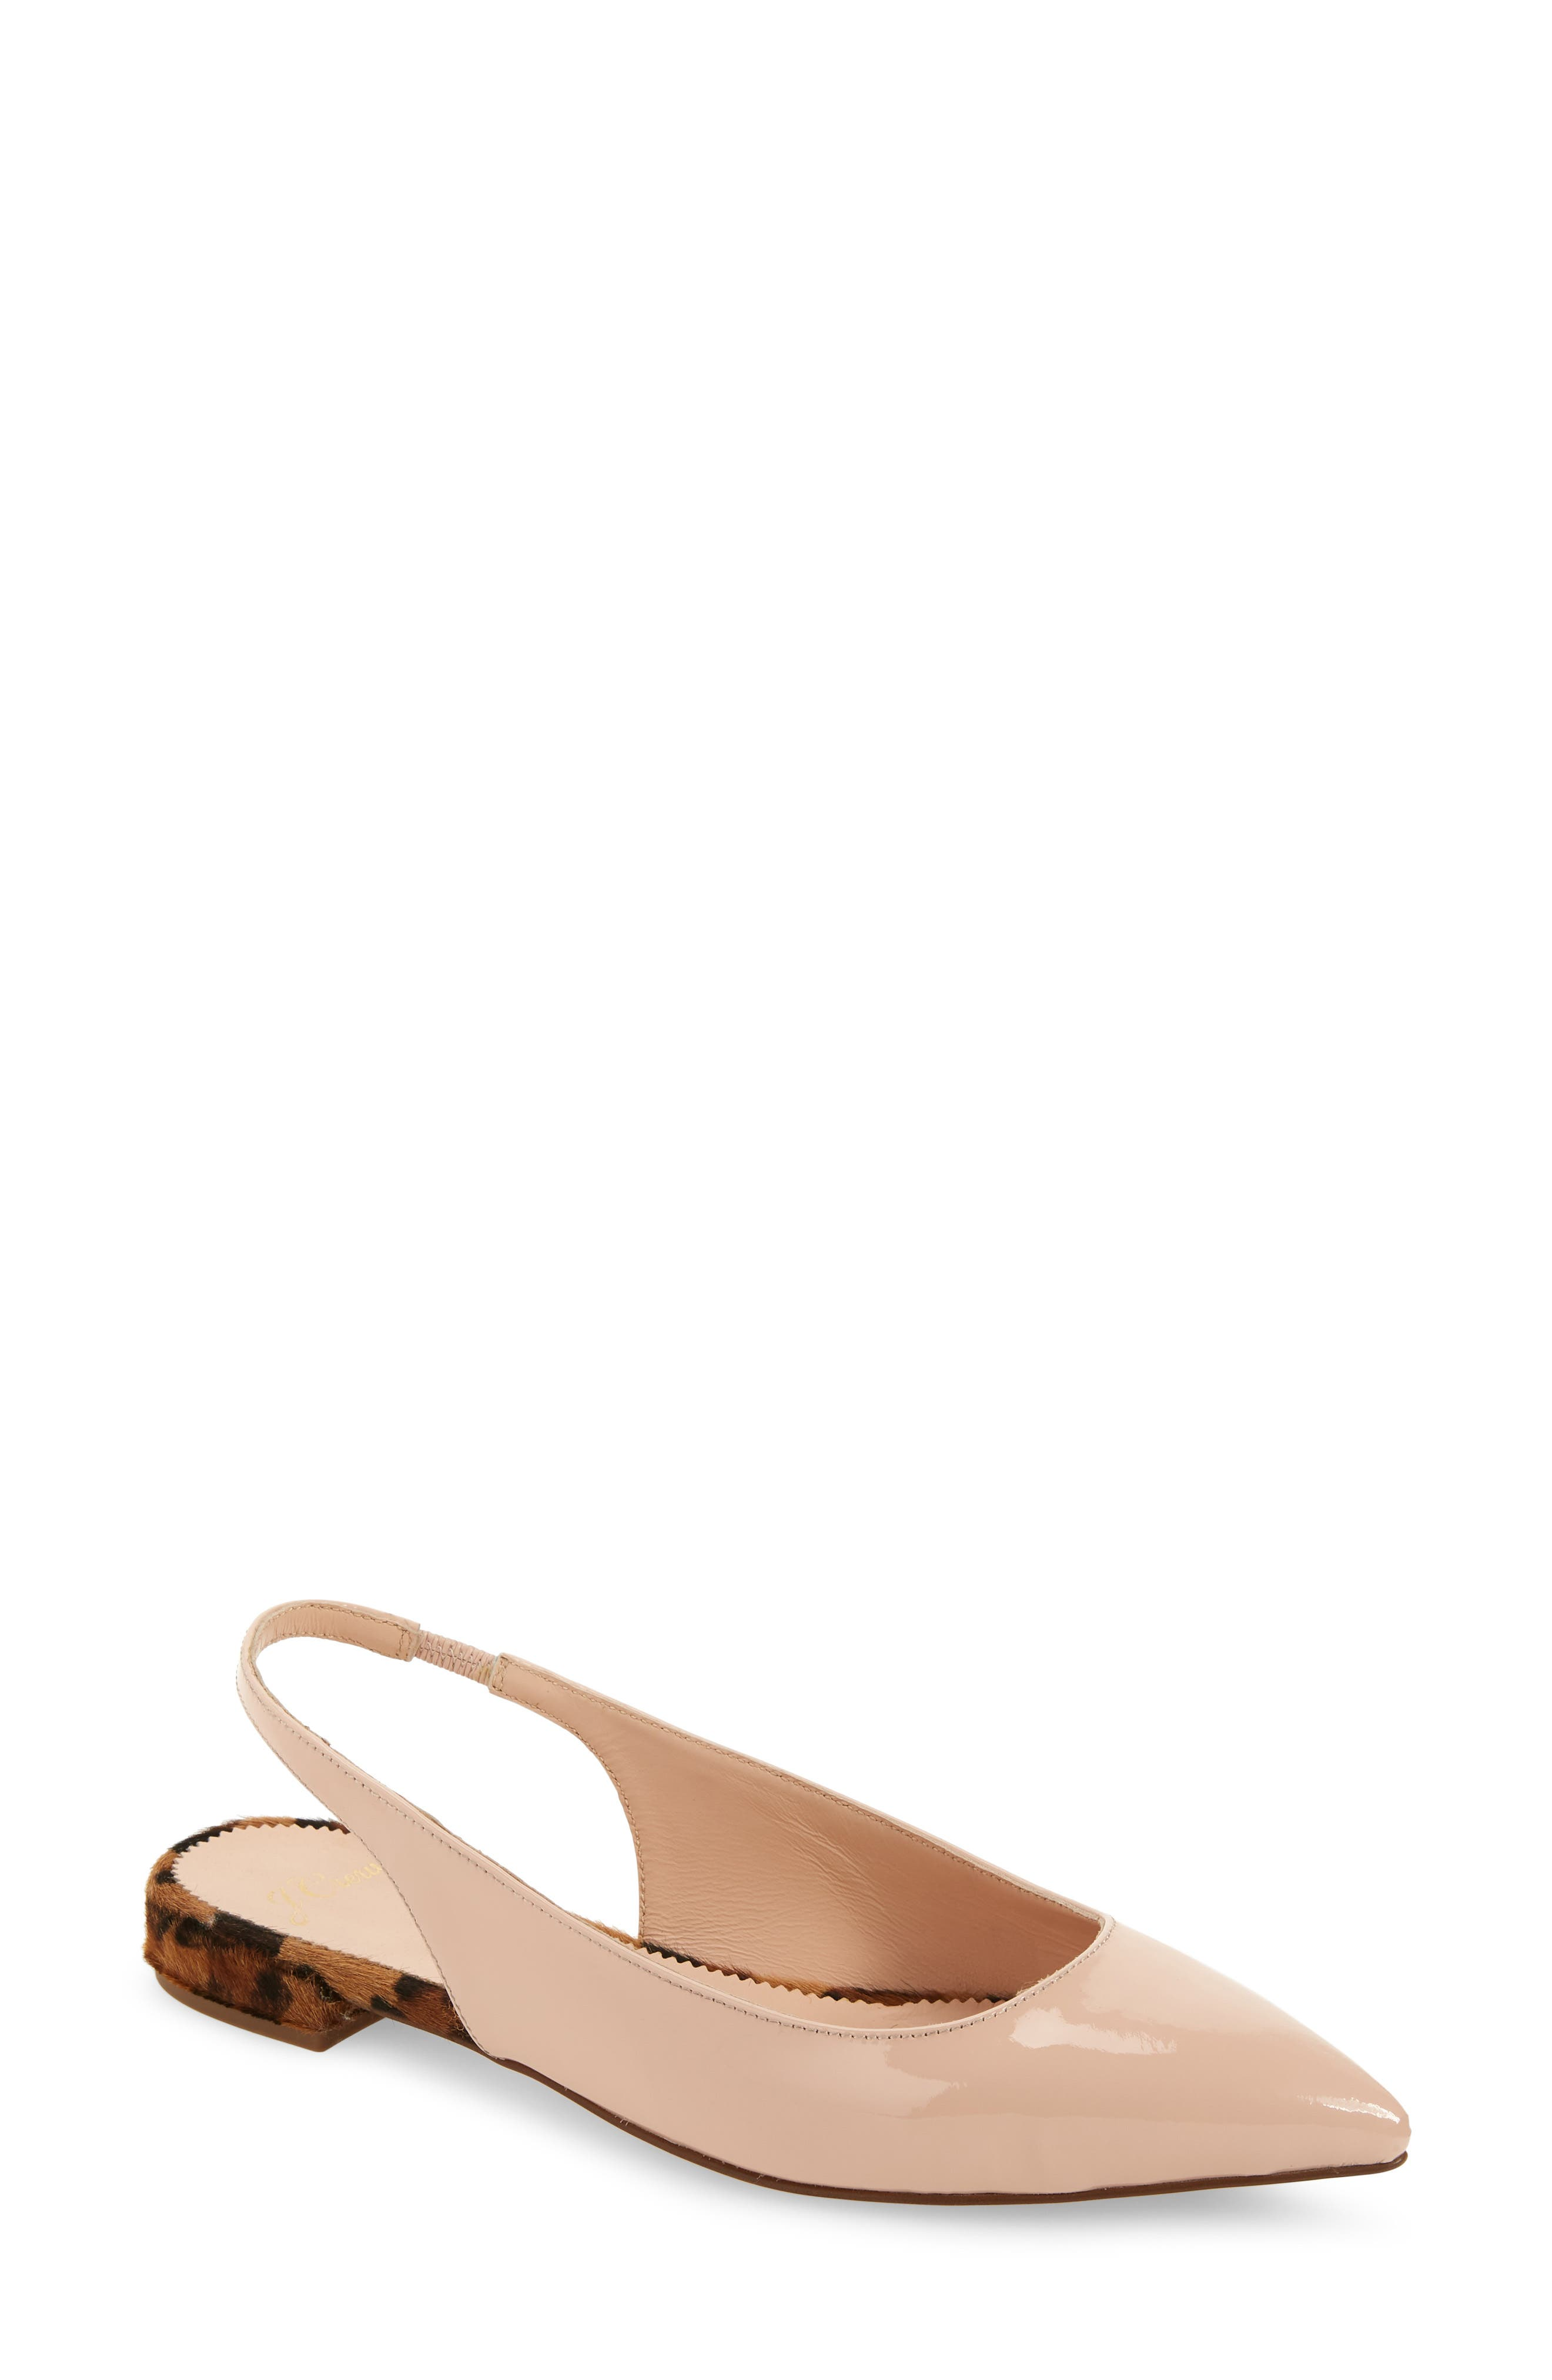 a2677ab8fd92 Women's J.Crew Shoes | Nordstrom